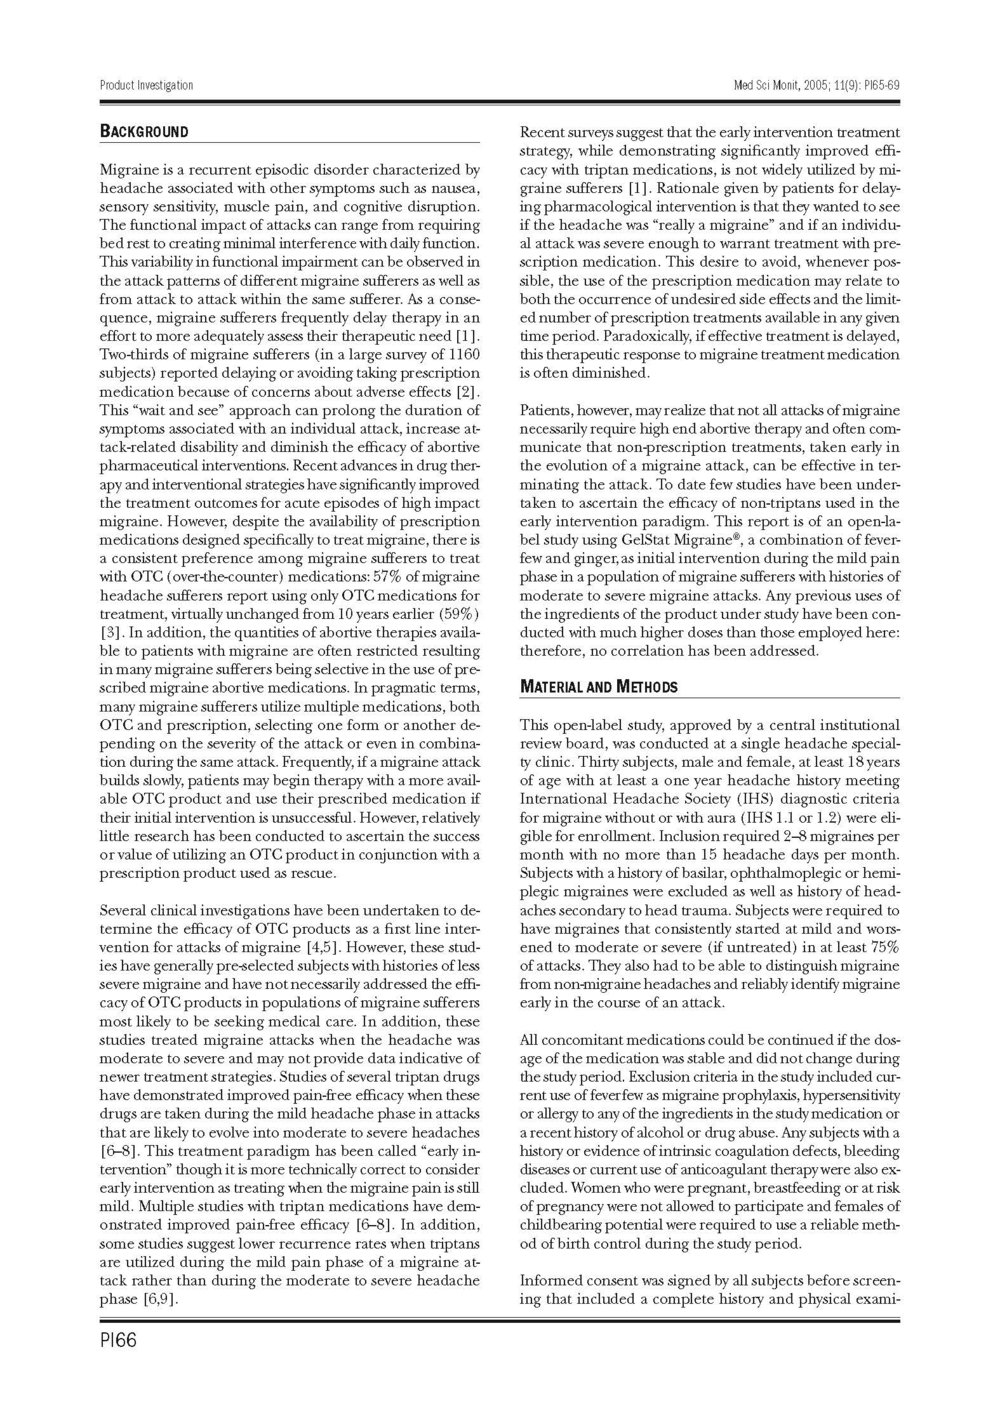 GelStat Clincal_Test_Study water based_Page_2.jpg